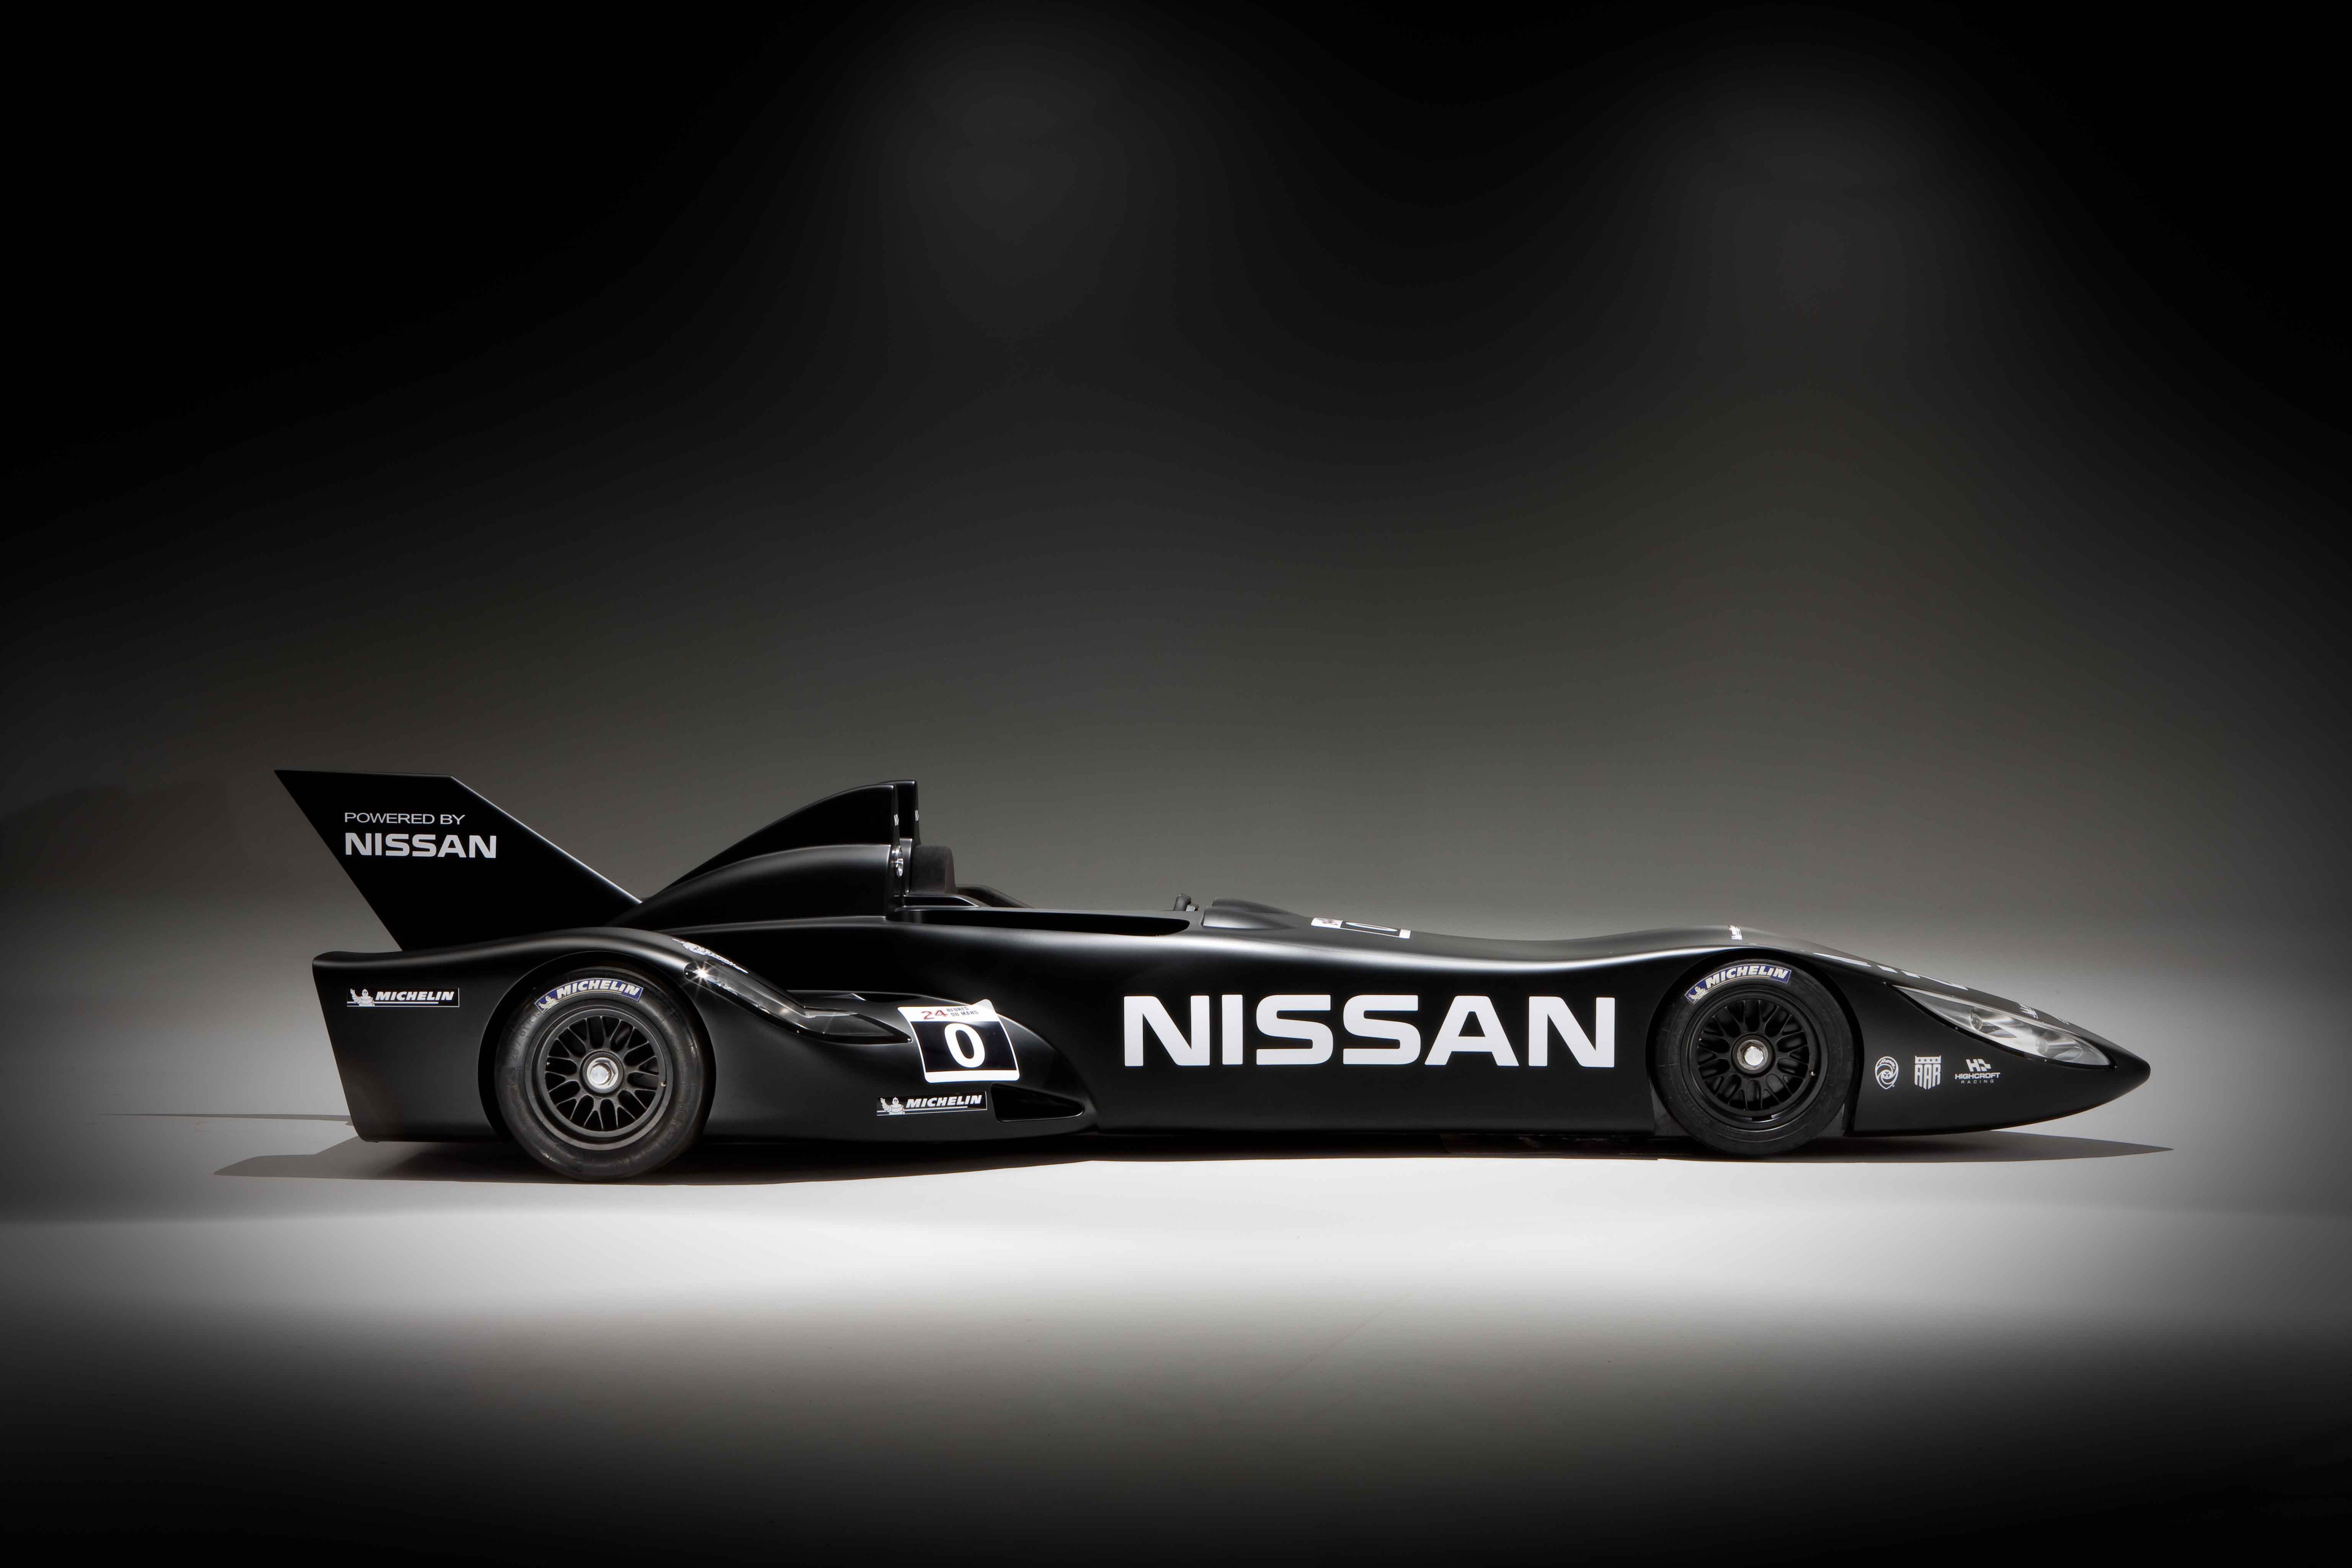 http://50to70.com/wp-content/uploads/2012/10/nissan-deltawing-2.jpg